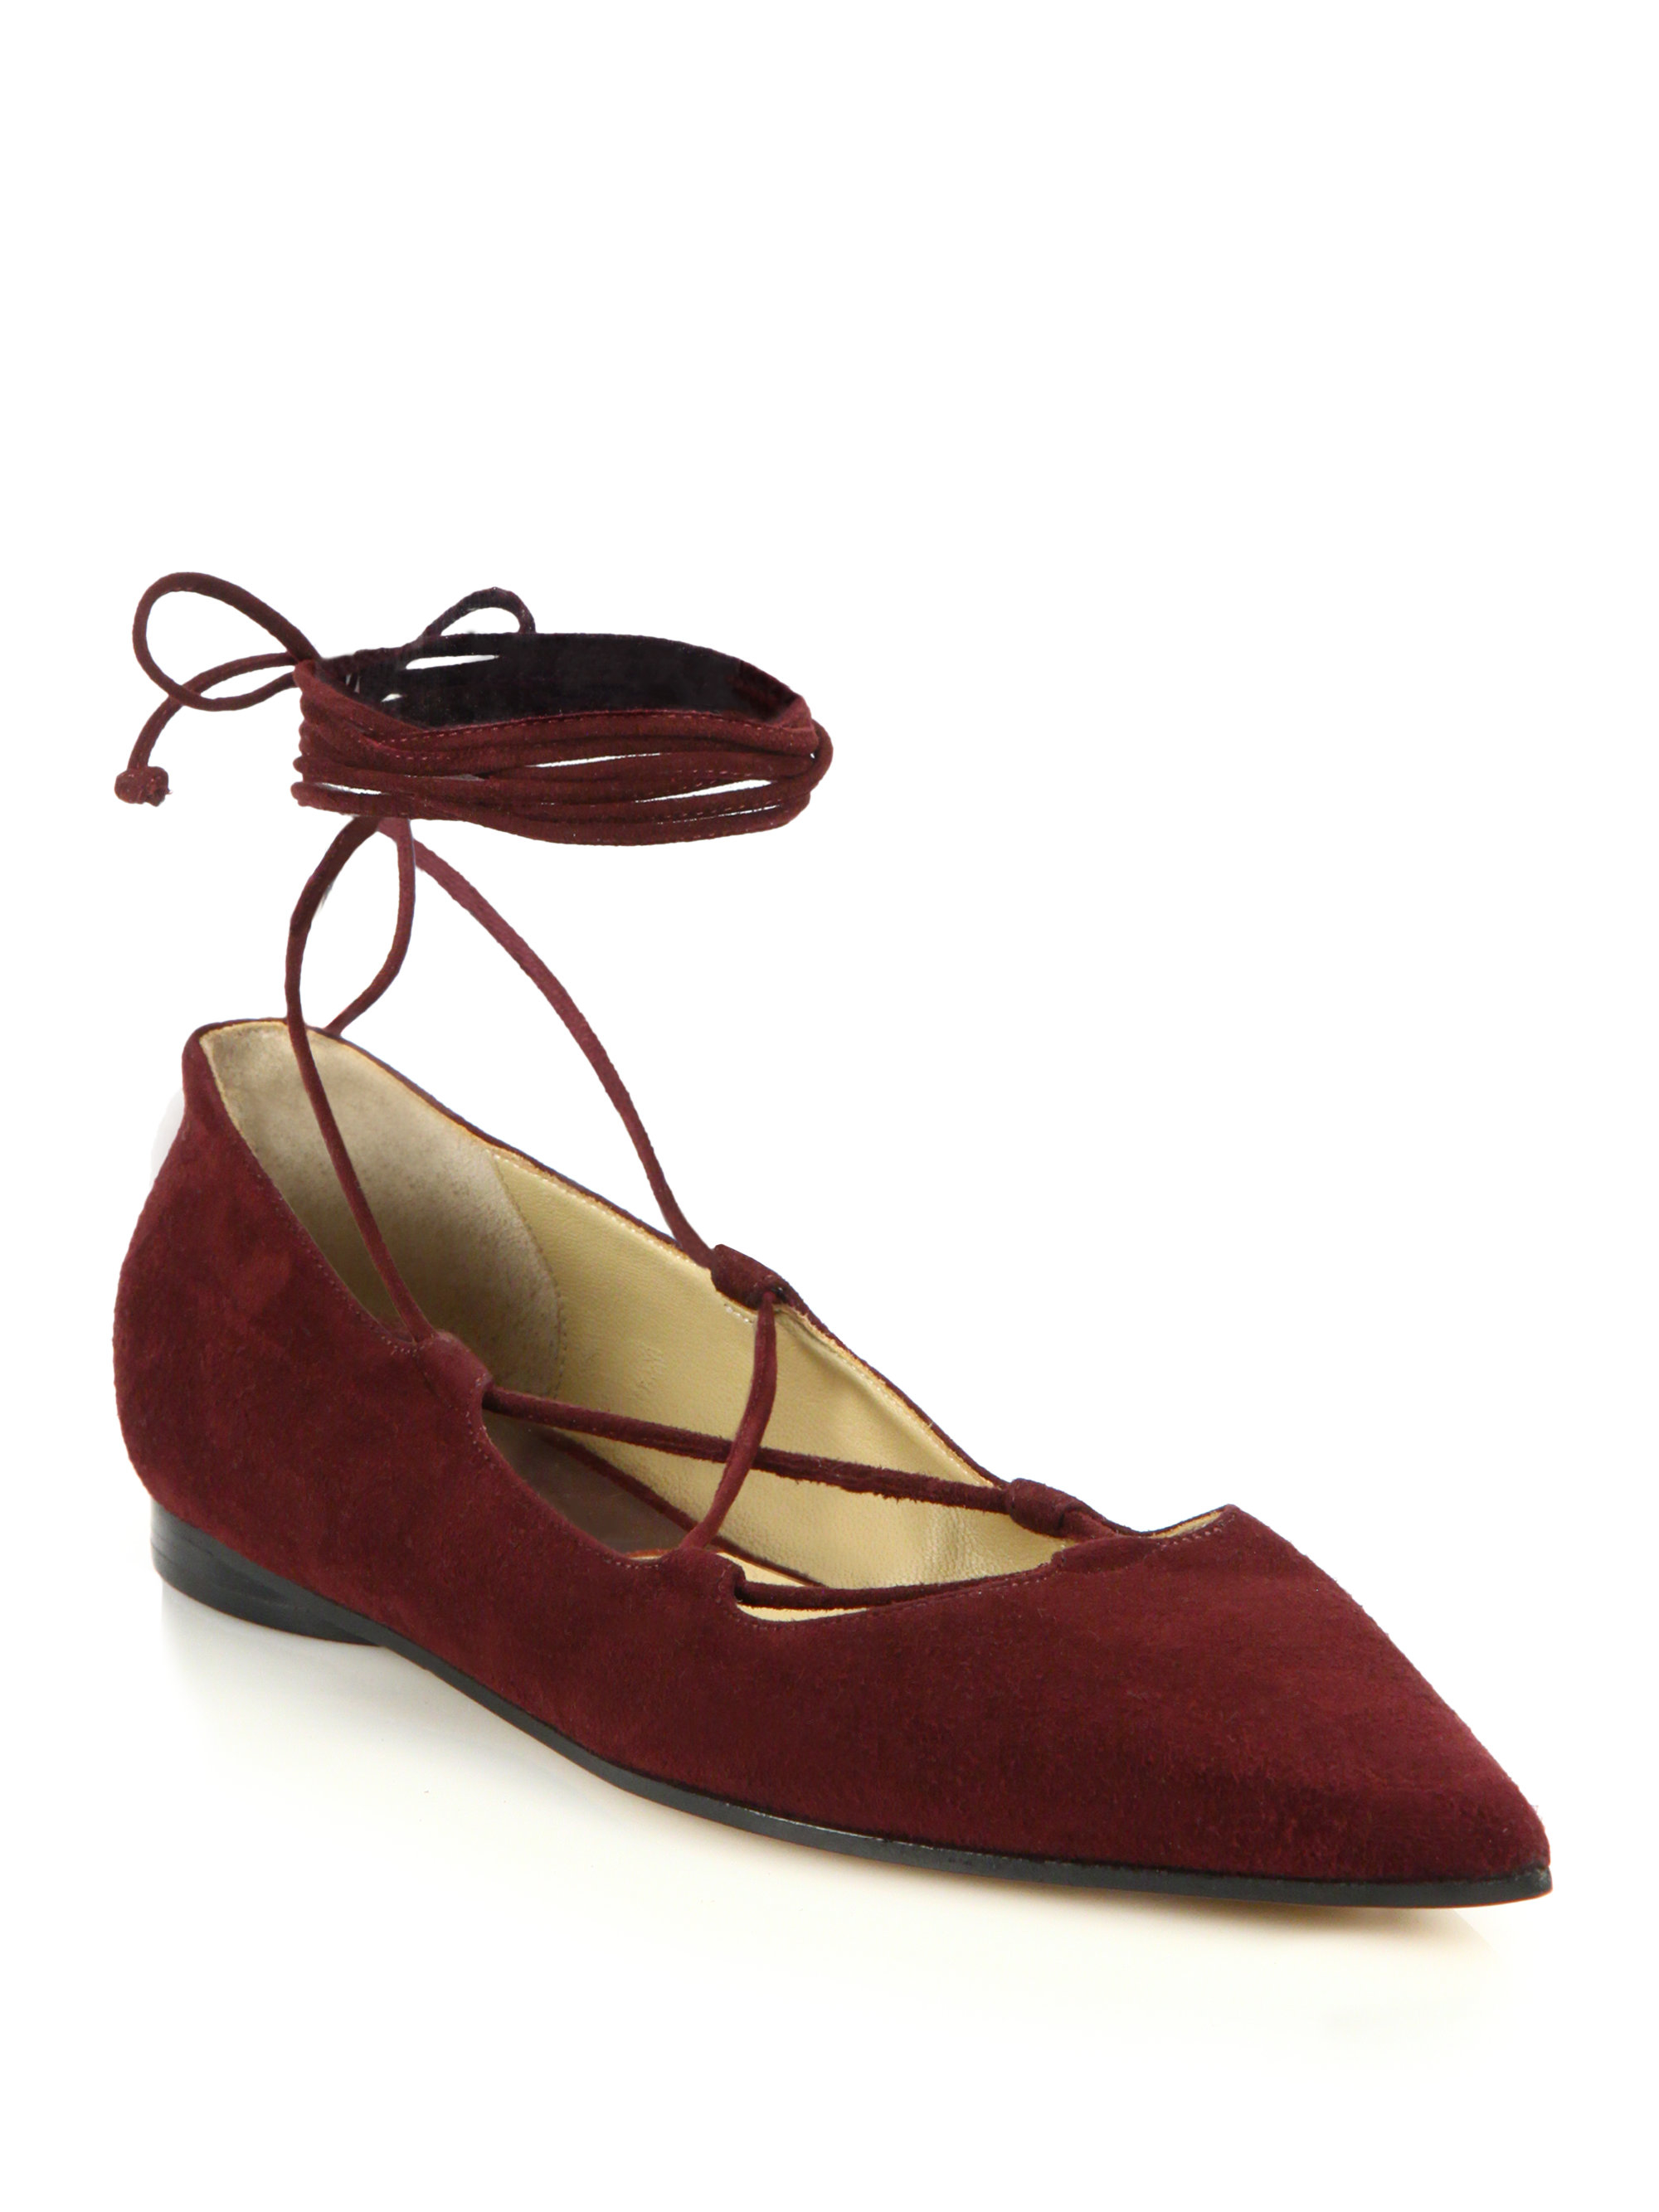 28177cc28 Michael Kors Kallie Runway Suede Lace-up Flats in Red - Lyst